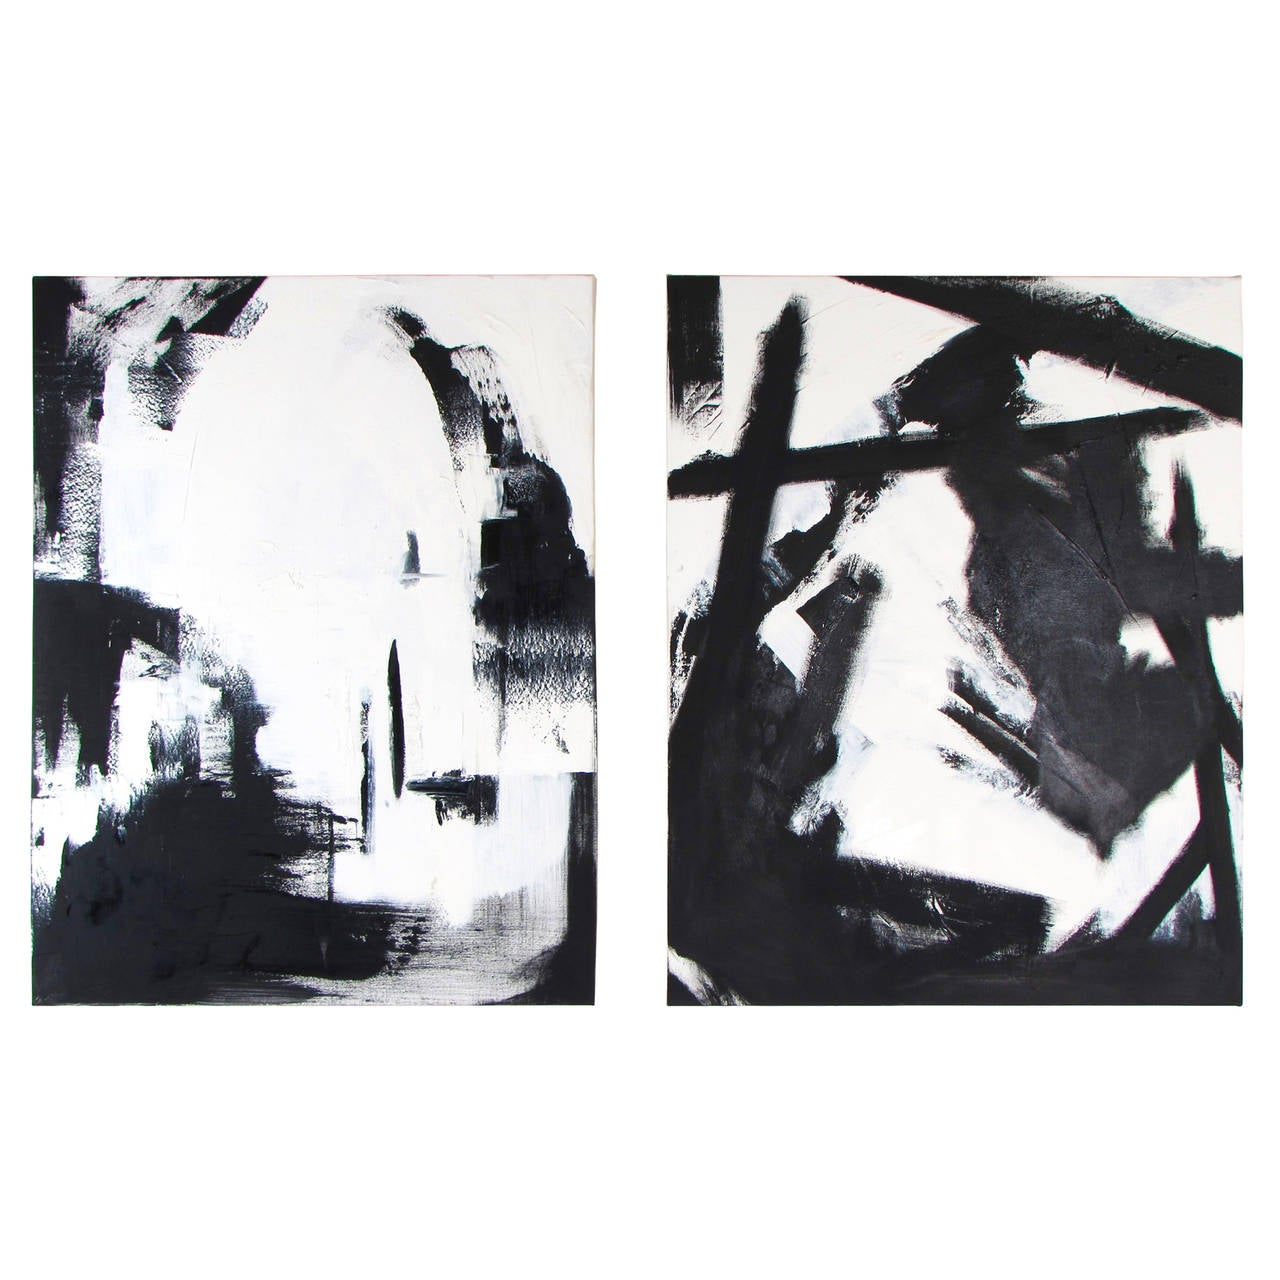 099e424b16c Large Black and White Oil on Canvas Abstract Paintings by Guillermo Calles  For Sale